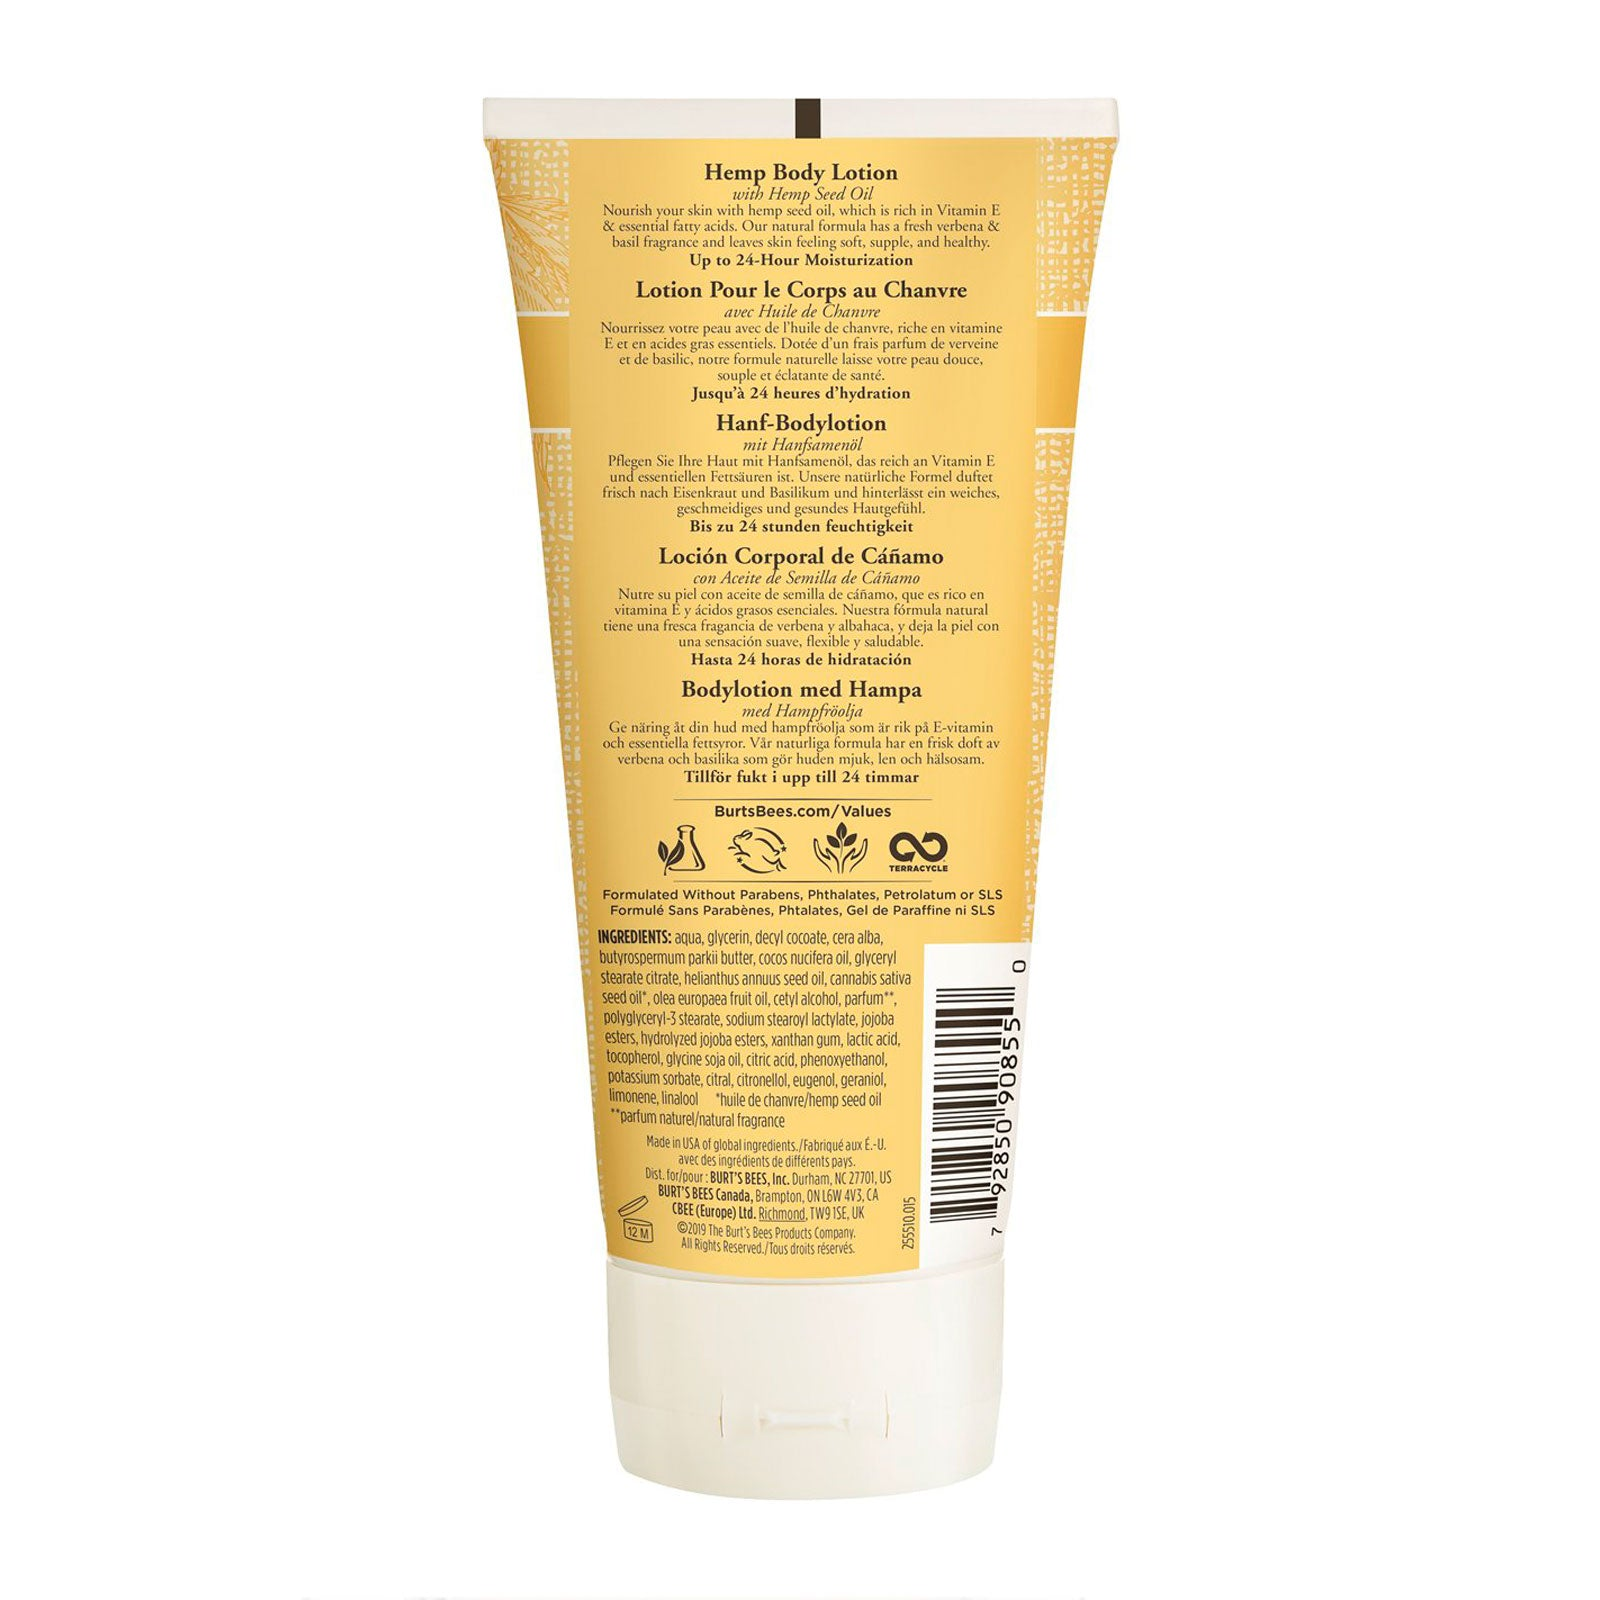 Burt's Bees® Hemp Body Lotion with Hemp Seed Oil for Dry Skin 170g